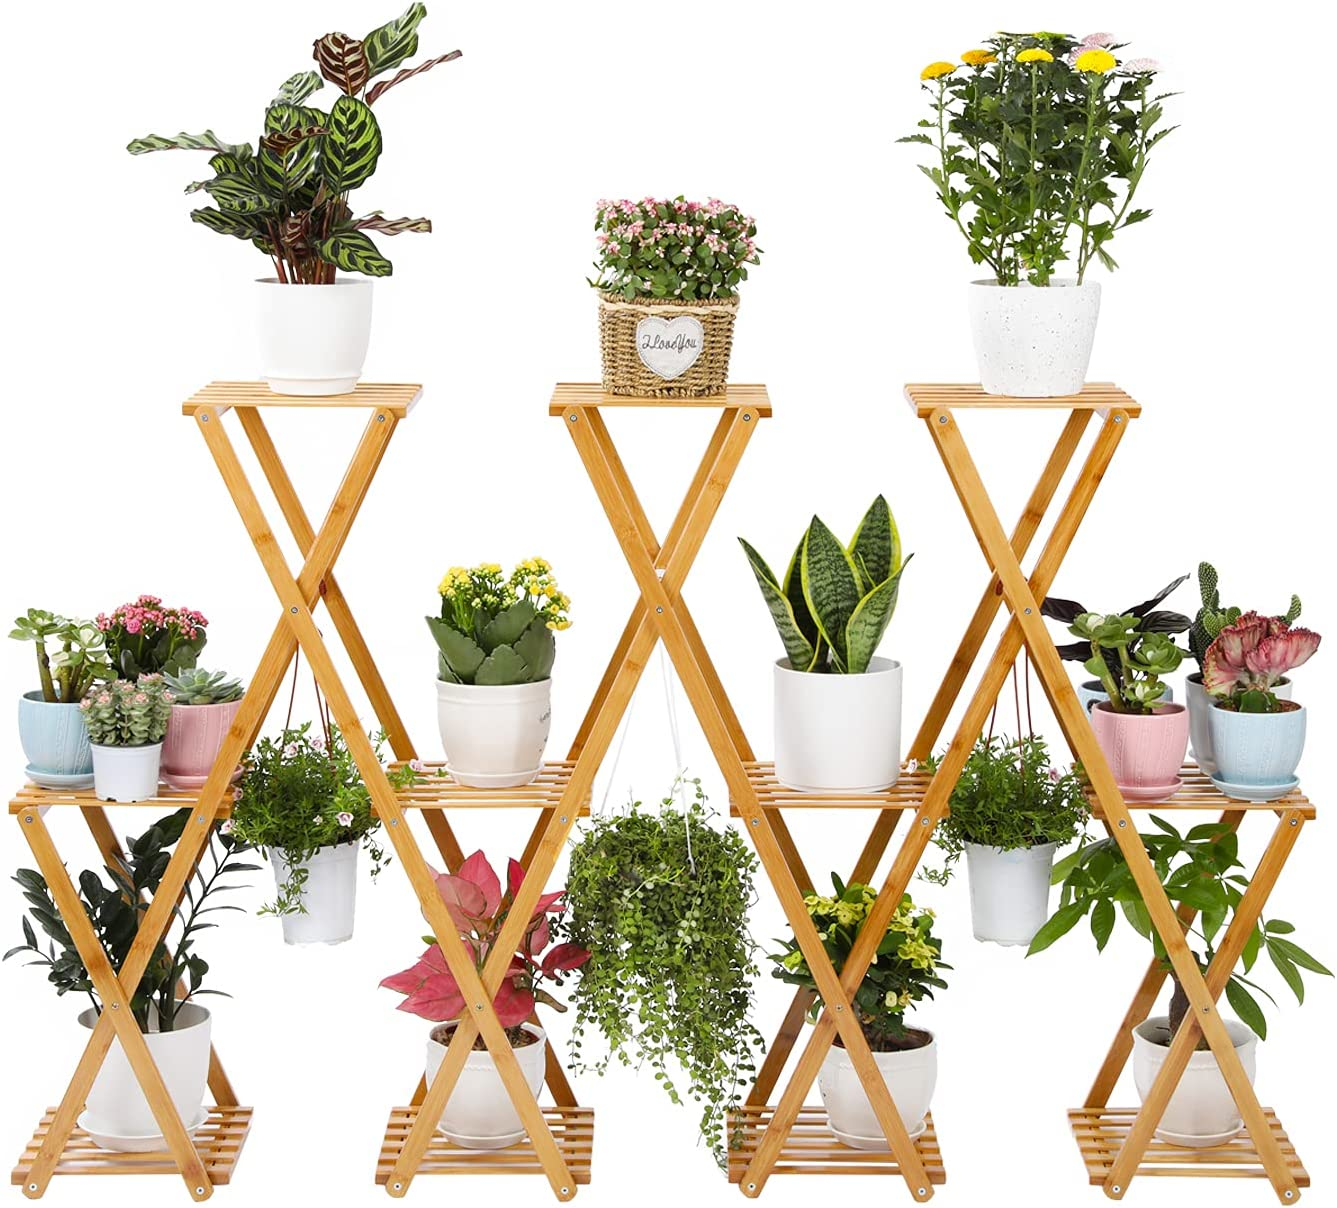 Foldable Bamboo Plant Stand Large 20 Cheap bargain Outd Pots Capacity Large-scale sale Indoor